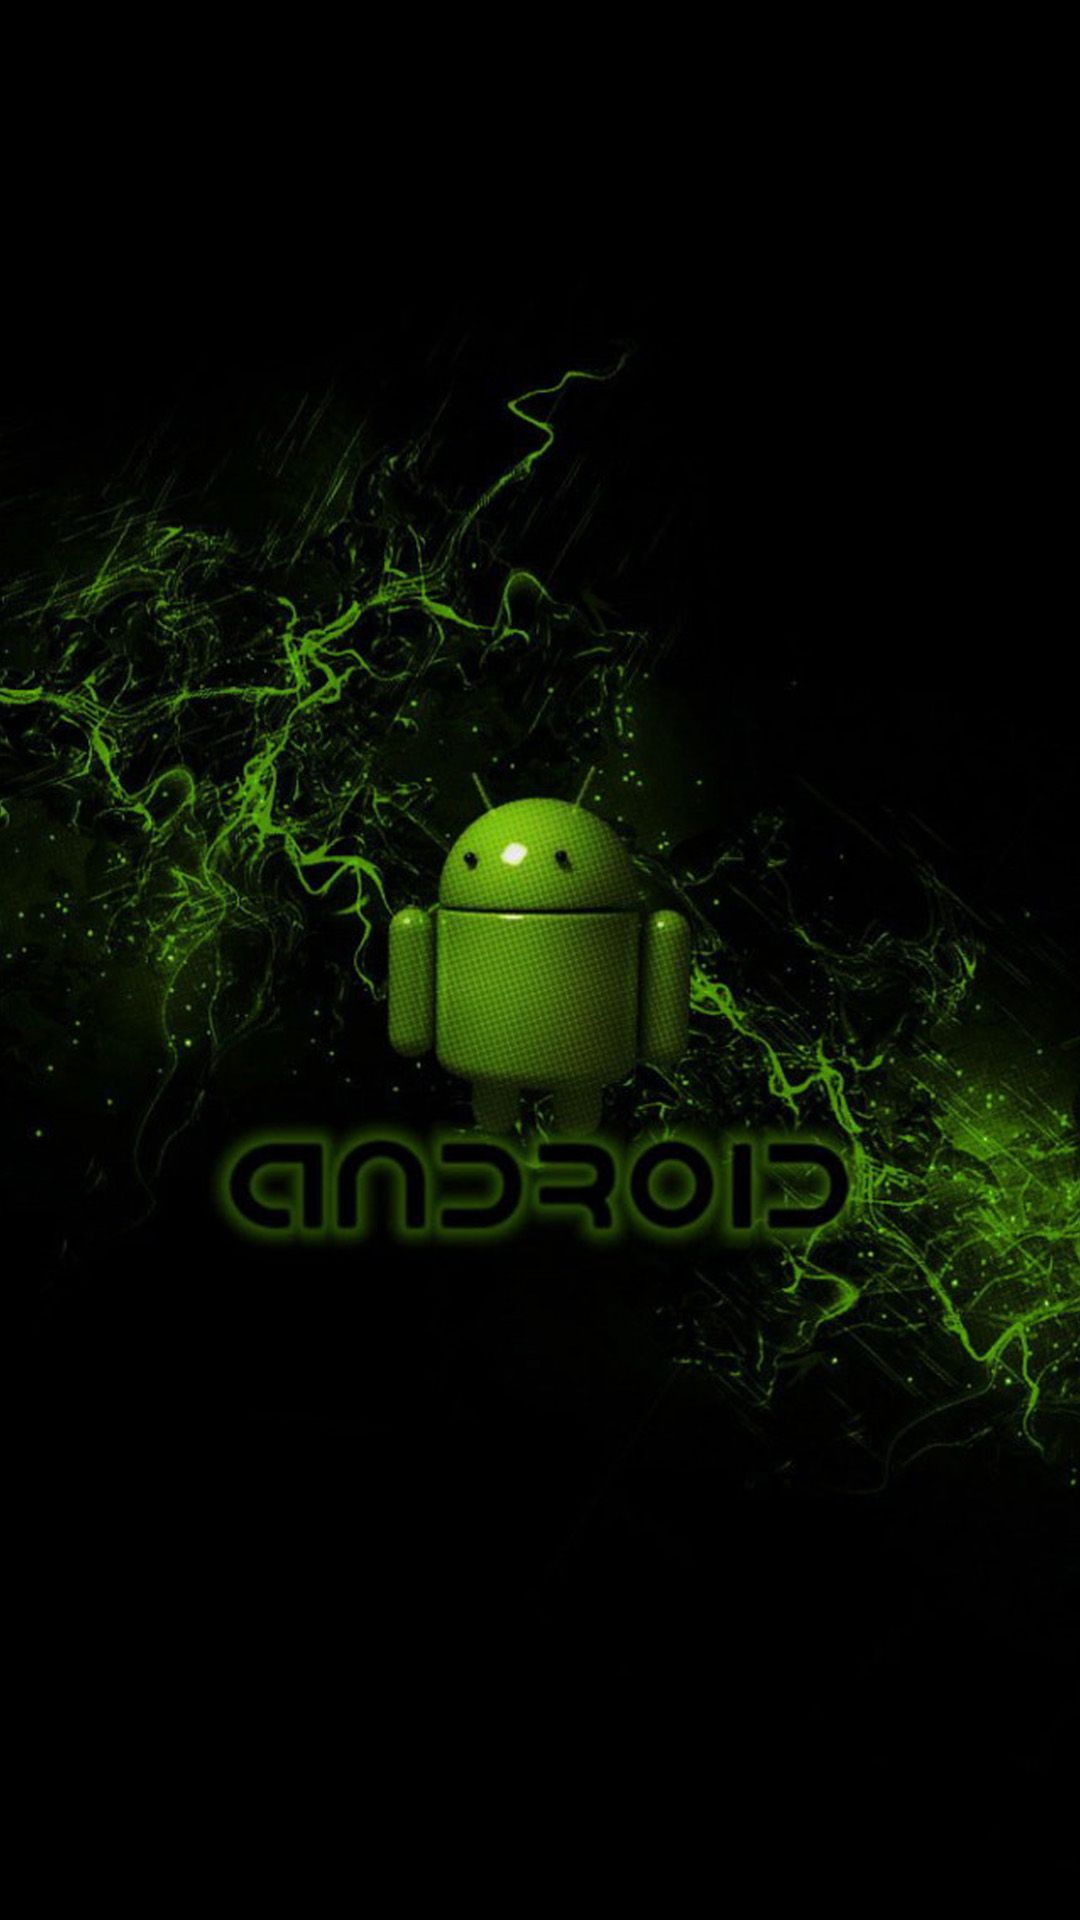 Android Smartphone Wallpapers Top Free Android Smartphone Backgrounds Wallpaperaccess